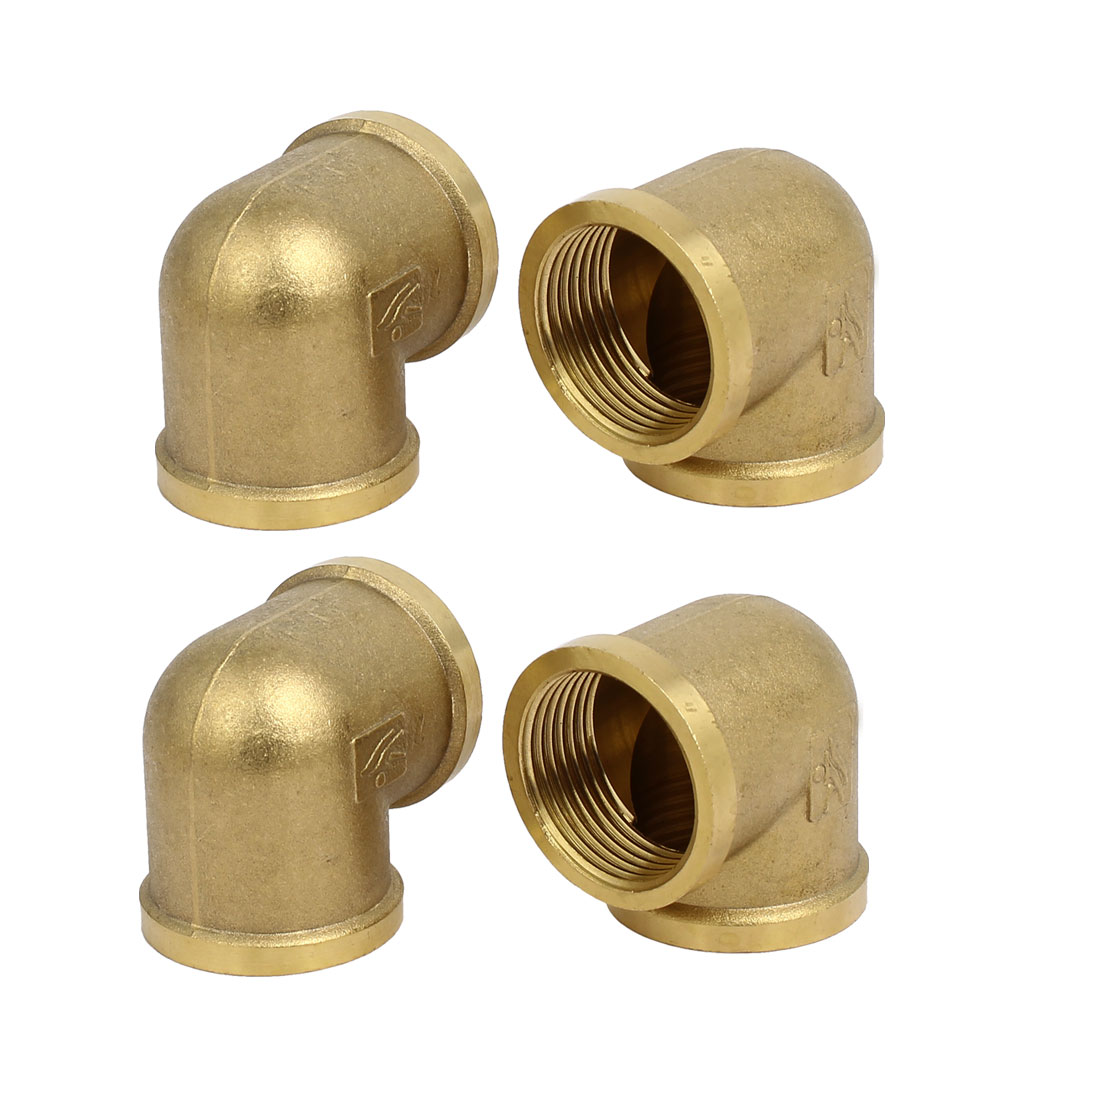 1BSP Female Thread Brass 90 Degree Elbow Tube Pipe Connecting Fittings 4pcs